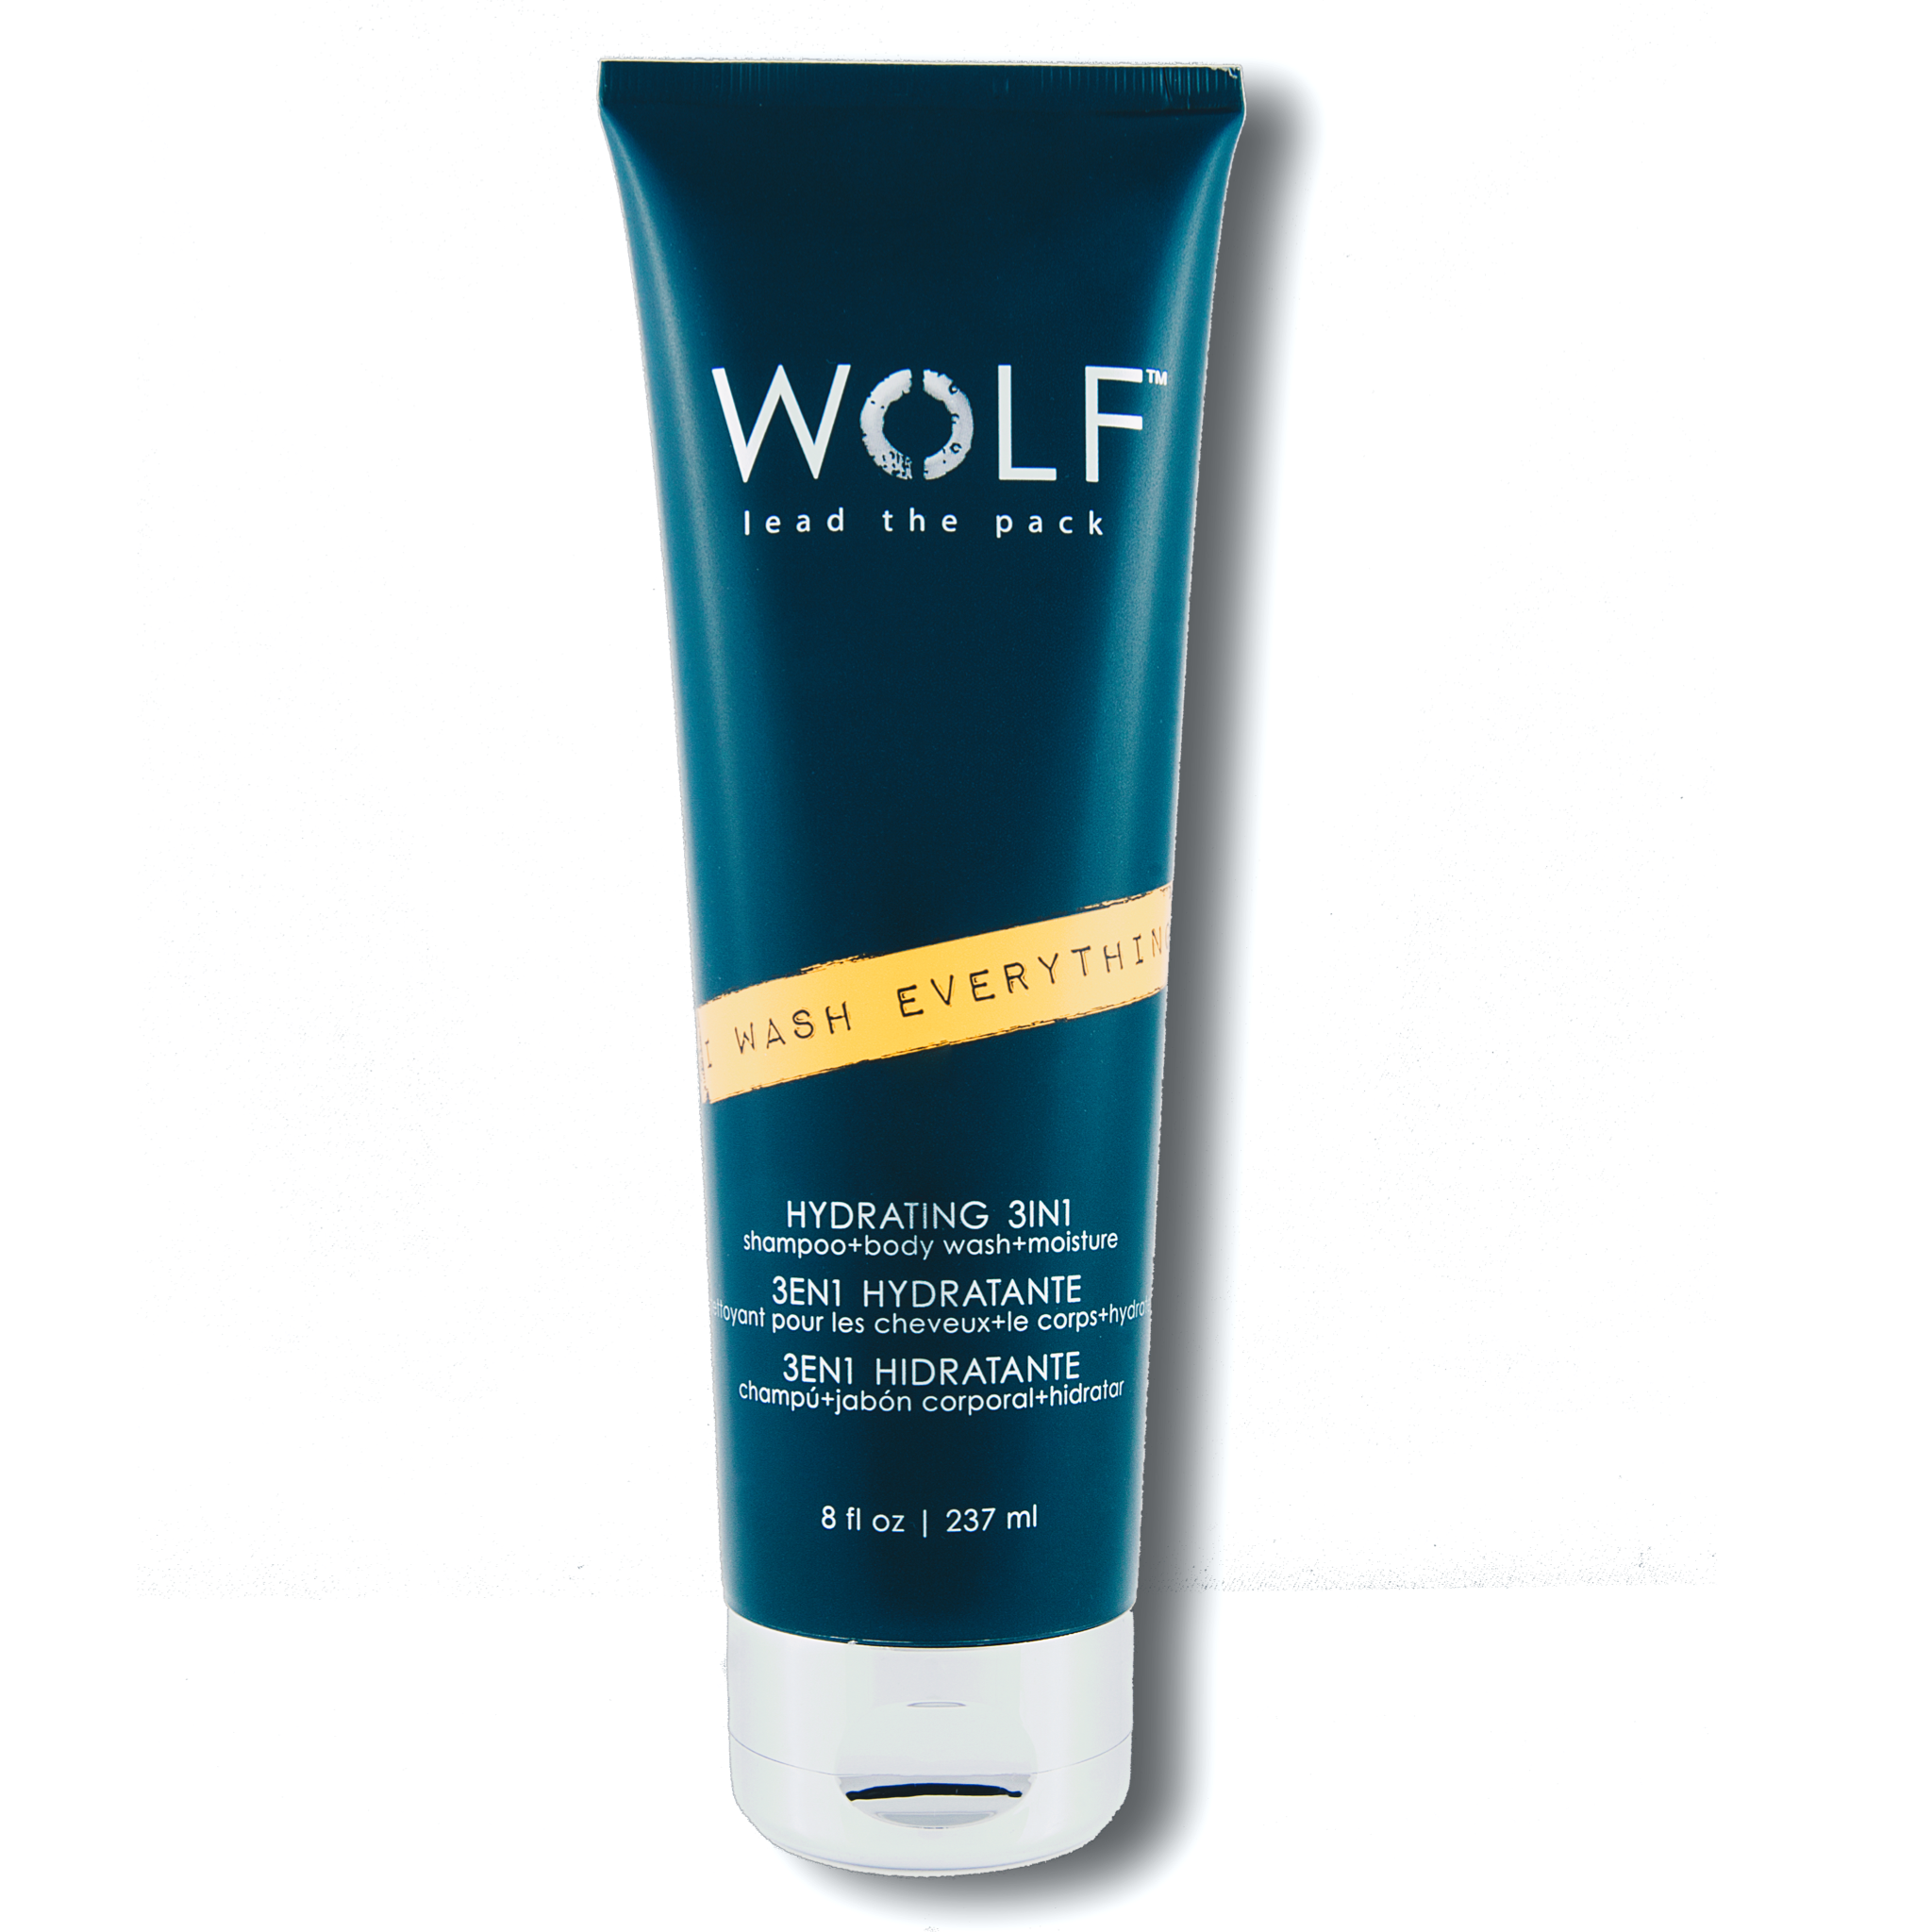 I WASH EVERYTHING Hydrating 3IN1, 8 fl oz - Wolf Grooming